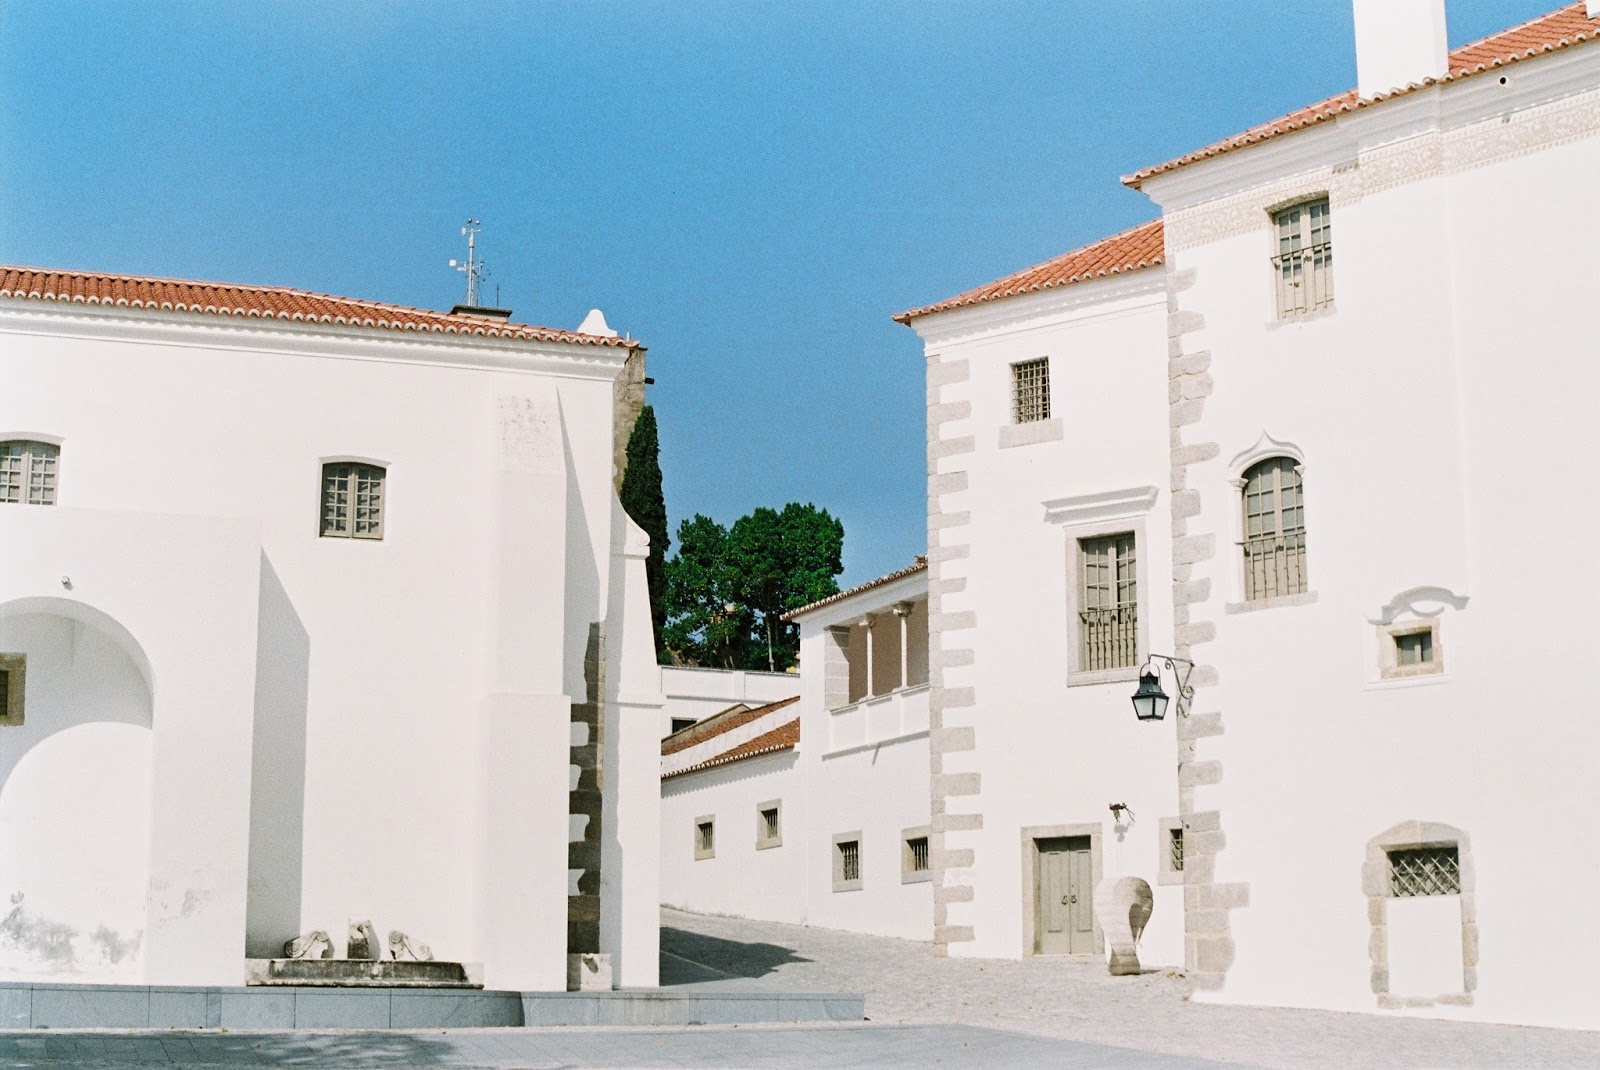 Alentejo Travel Guide - Évora | oandrajos.blogspot.co.uk